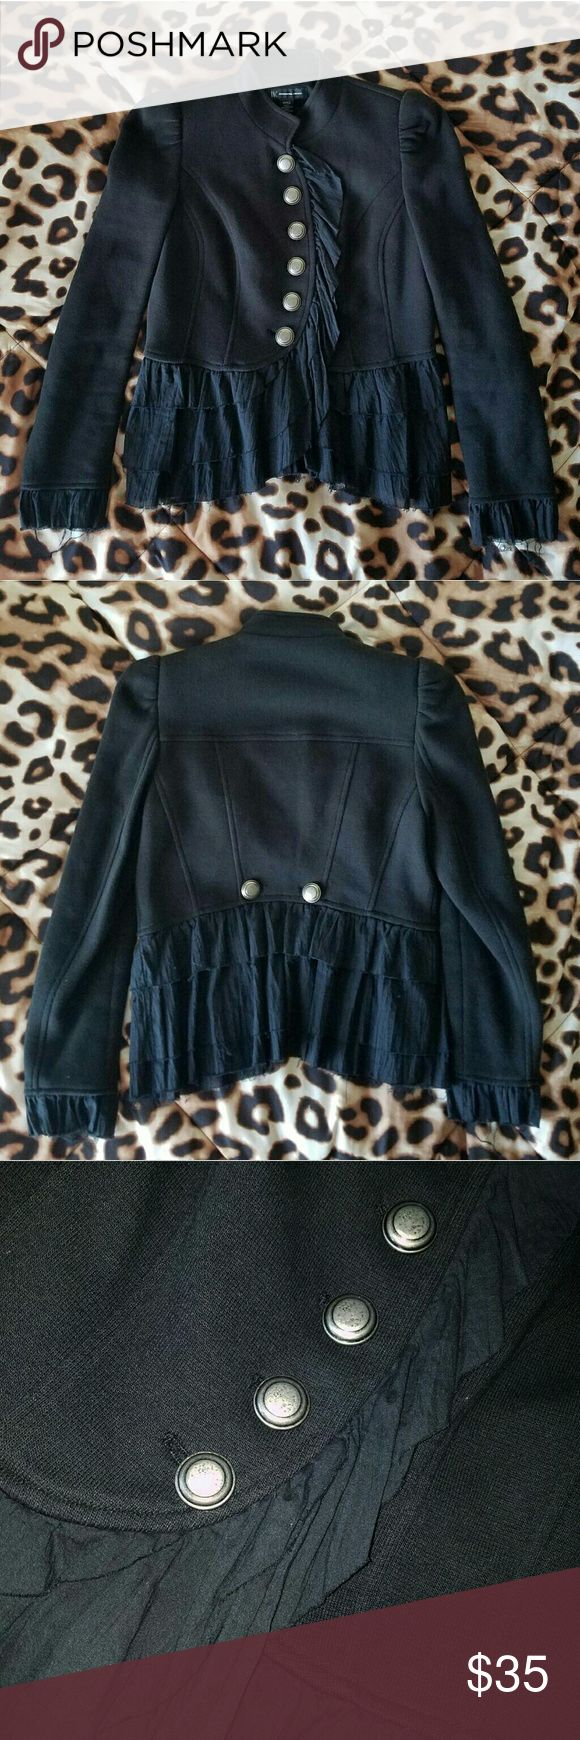 Ruffled Military Jacket Like new condition Size Small INC brand Light shoulder pads Looks just like Free People jackets, but for a lesser price! Urban Outfitters Jackets & Coats